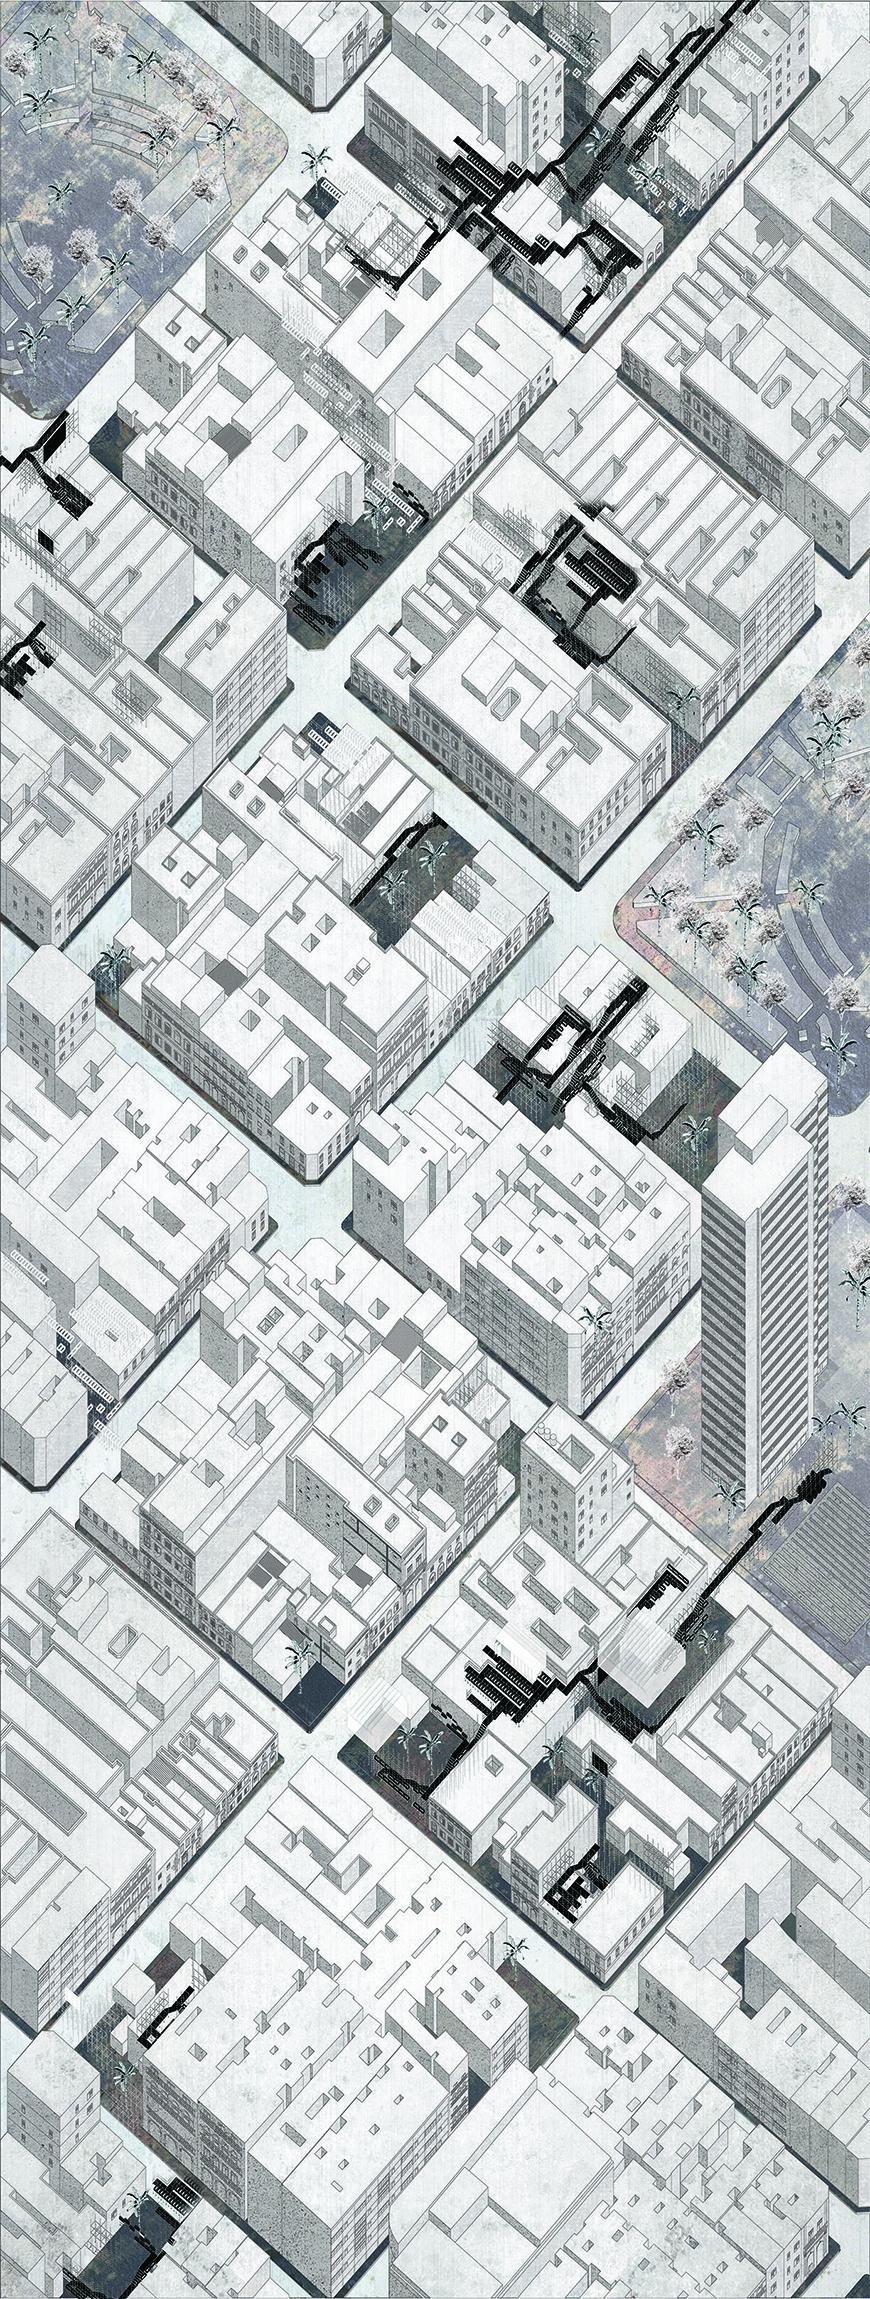 Axonometric drawing of downtown Havana diagramming spaces between buildings where the project could be implemented.